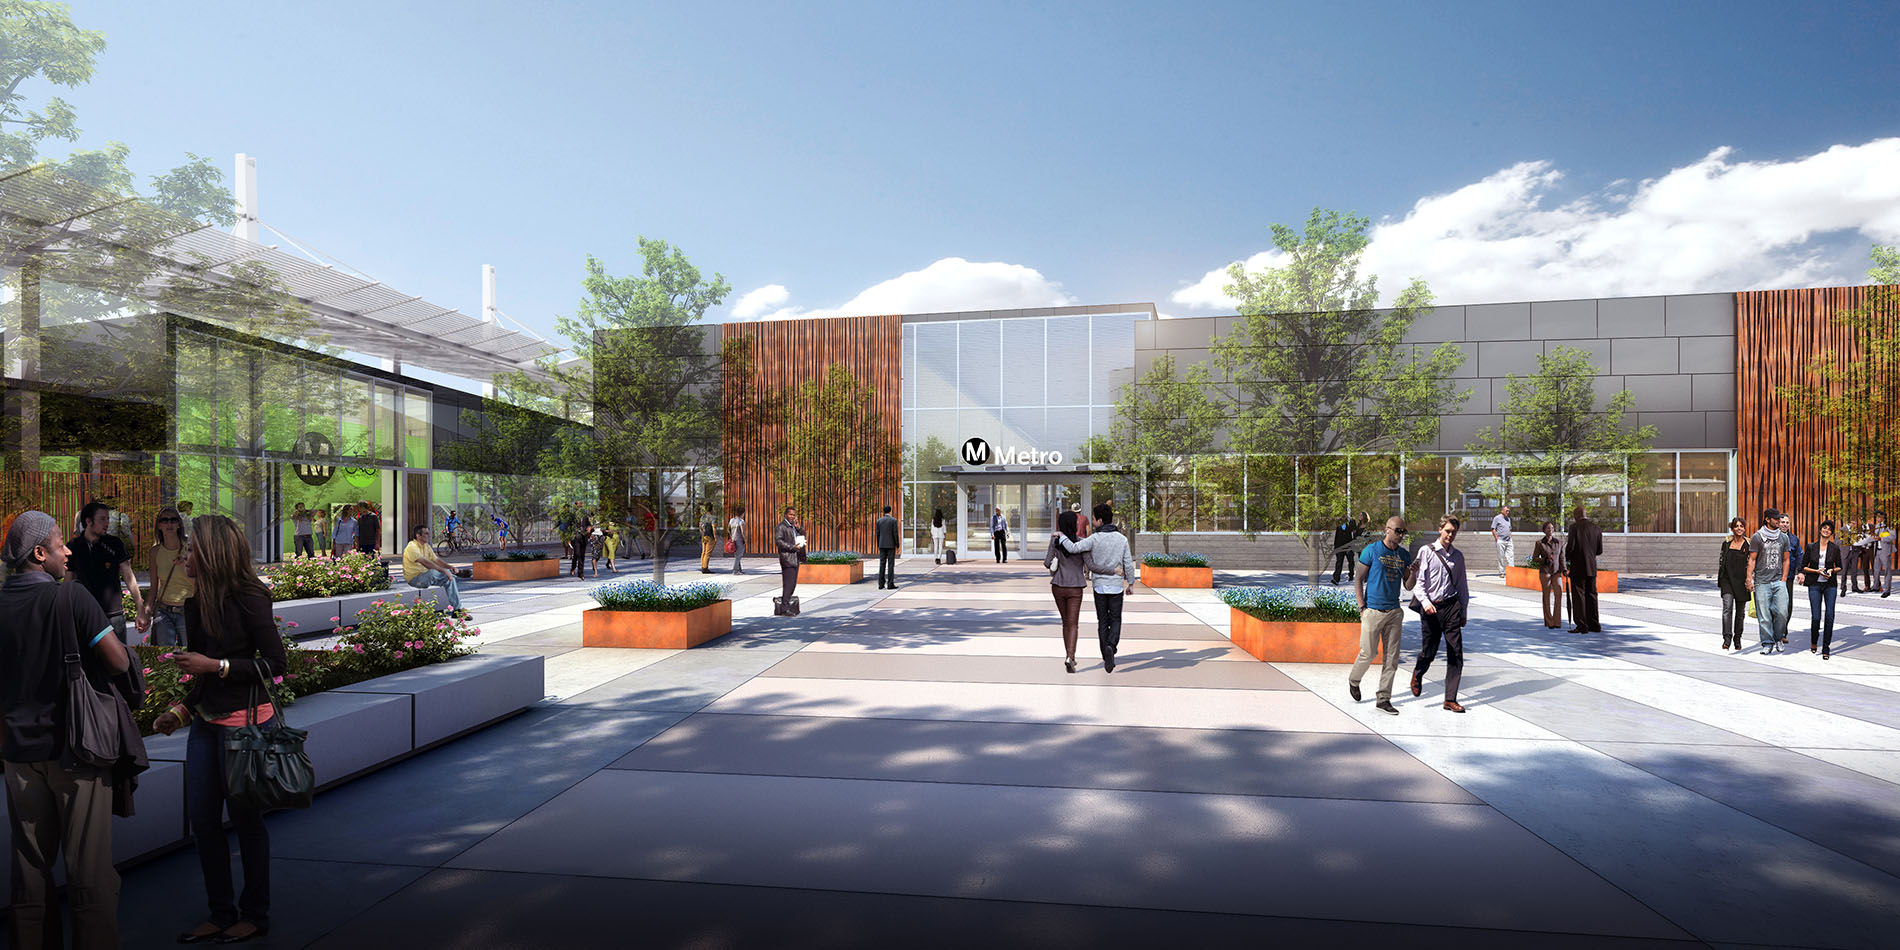 A Plaza for the Community: The new plaza will house a new Metro Bike Hub and Customer Service/Transit Security Center. The design will welcome community events year round.